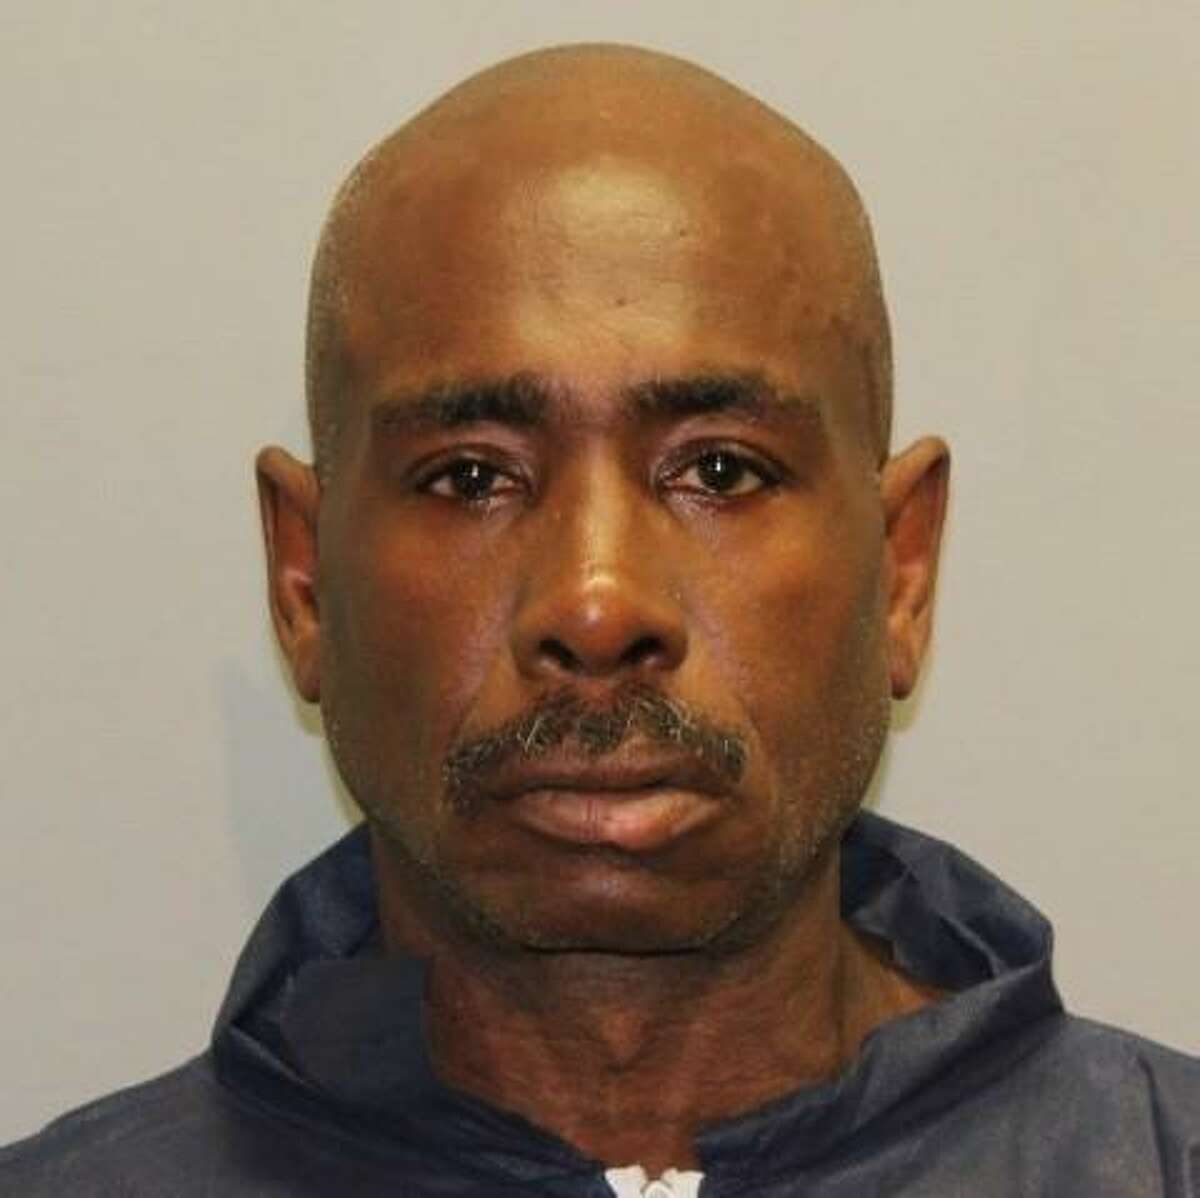 Hayward Smith, 52, was charged with first-degree assault, criminal attempt to commit murder, carrying a dangerous weapon and second-degree breach of peace. He was held on a $1 million bond and appeared in court on Friday.